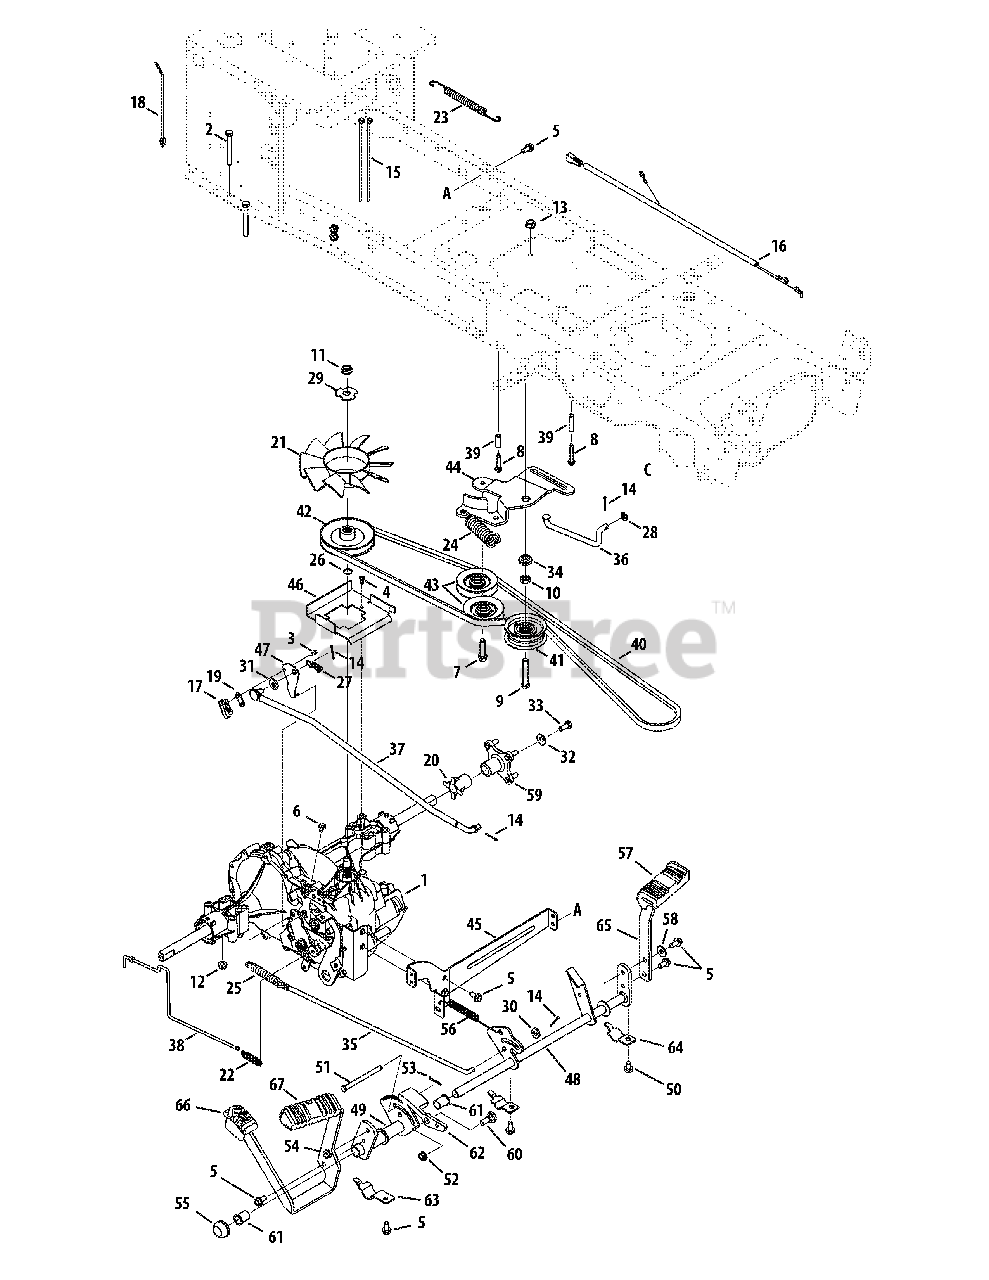 Cub Cadet Parts On The Drive System Diagram For Sltx 1054